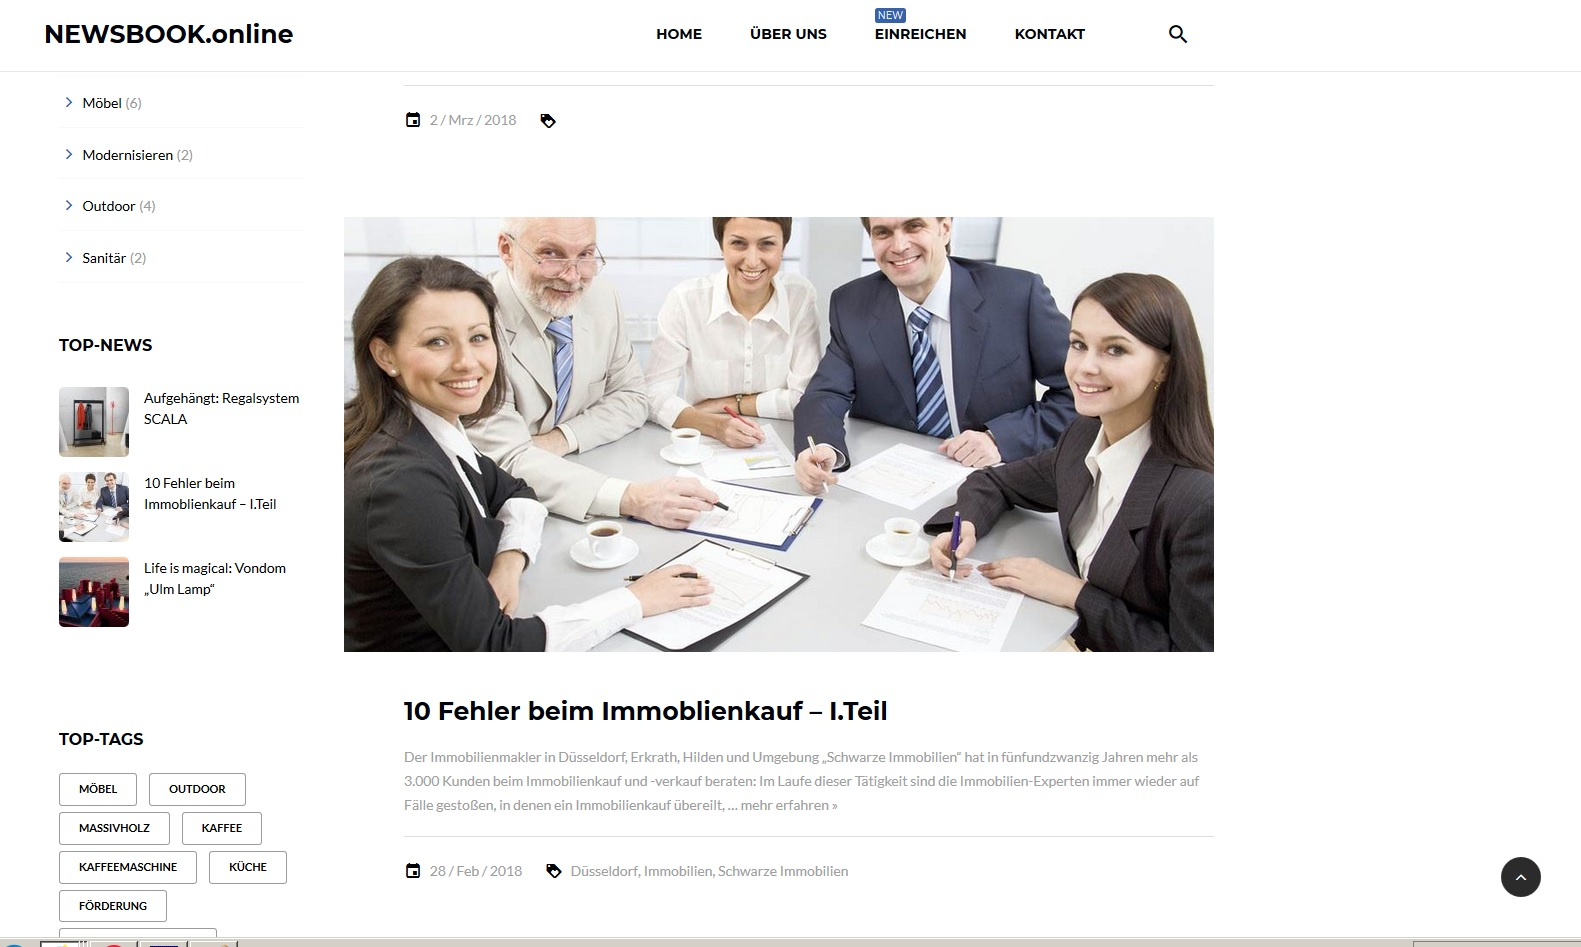 Website Newsbook.online